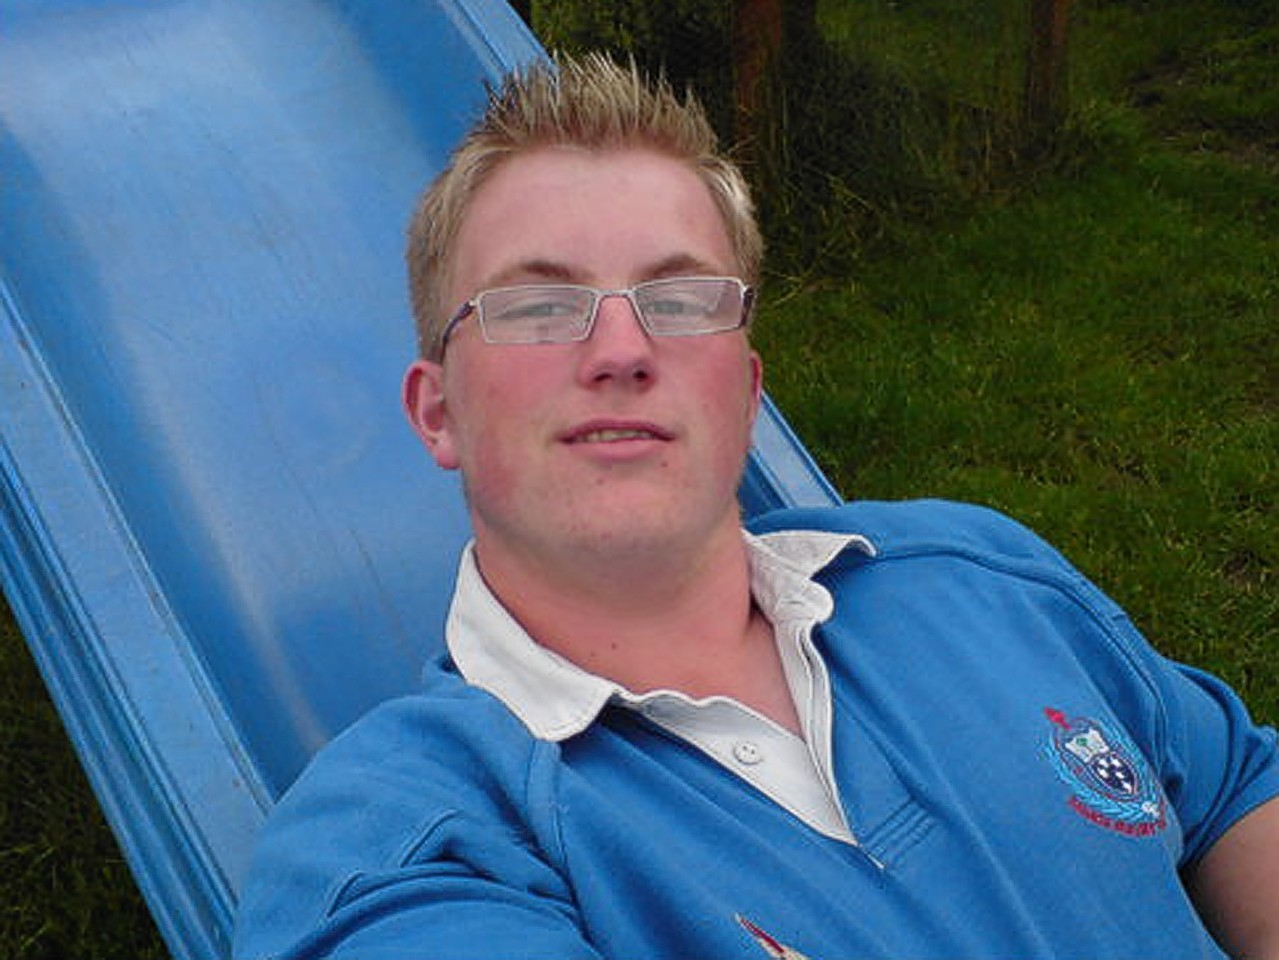 Zak Ferguson, who died aged 18 after his bike collided with a digger near Inverurie